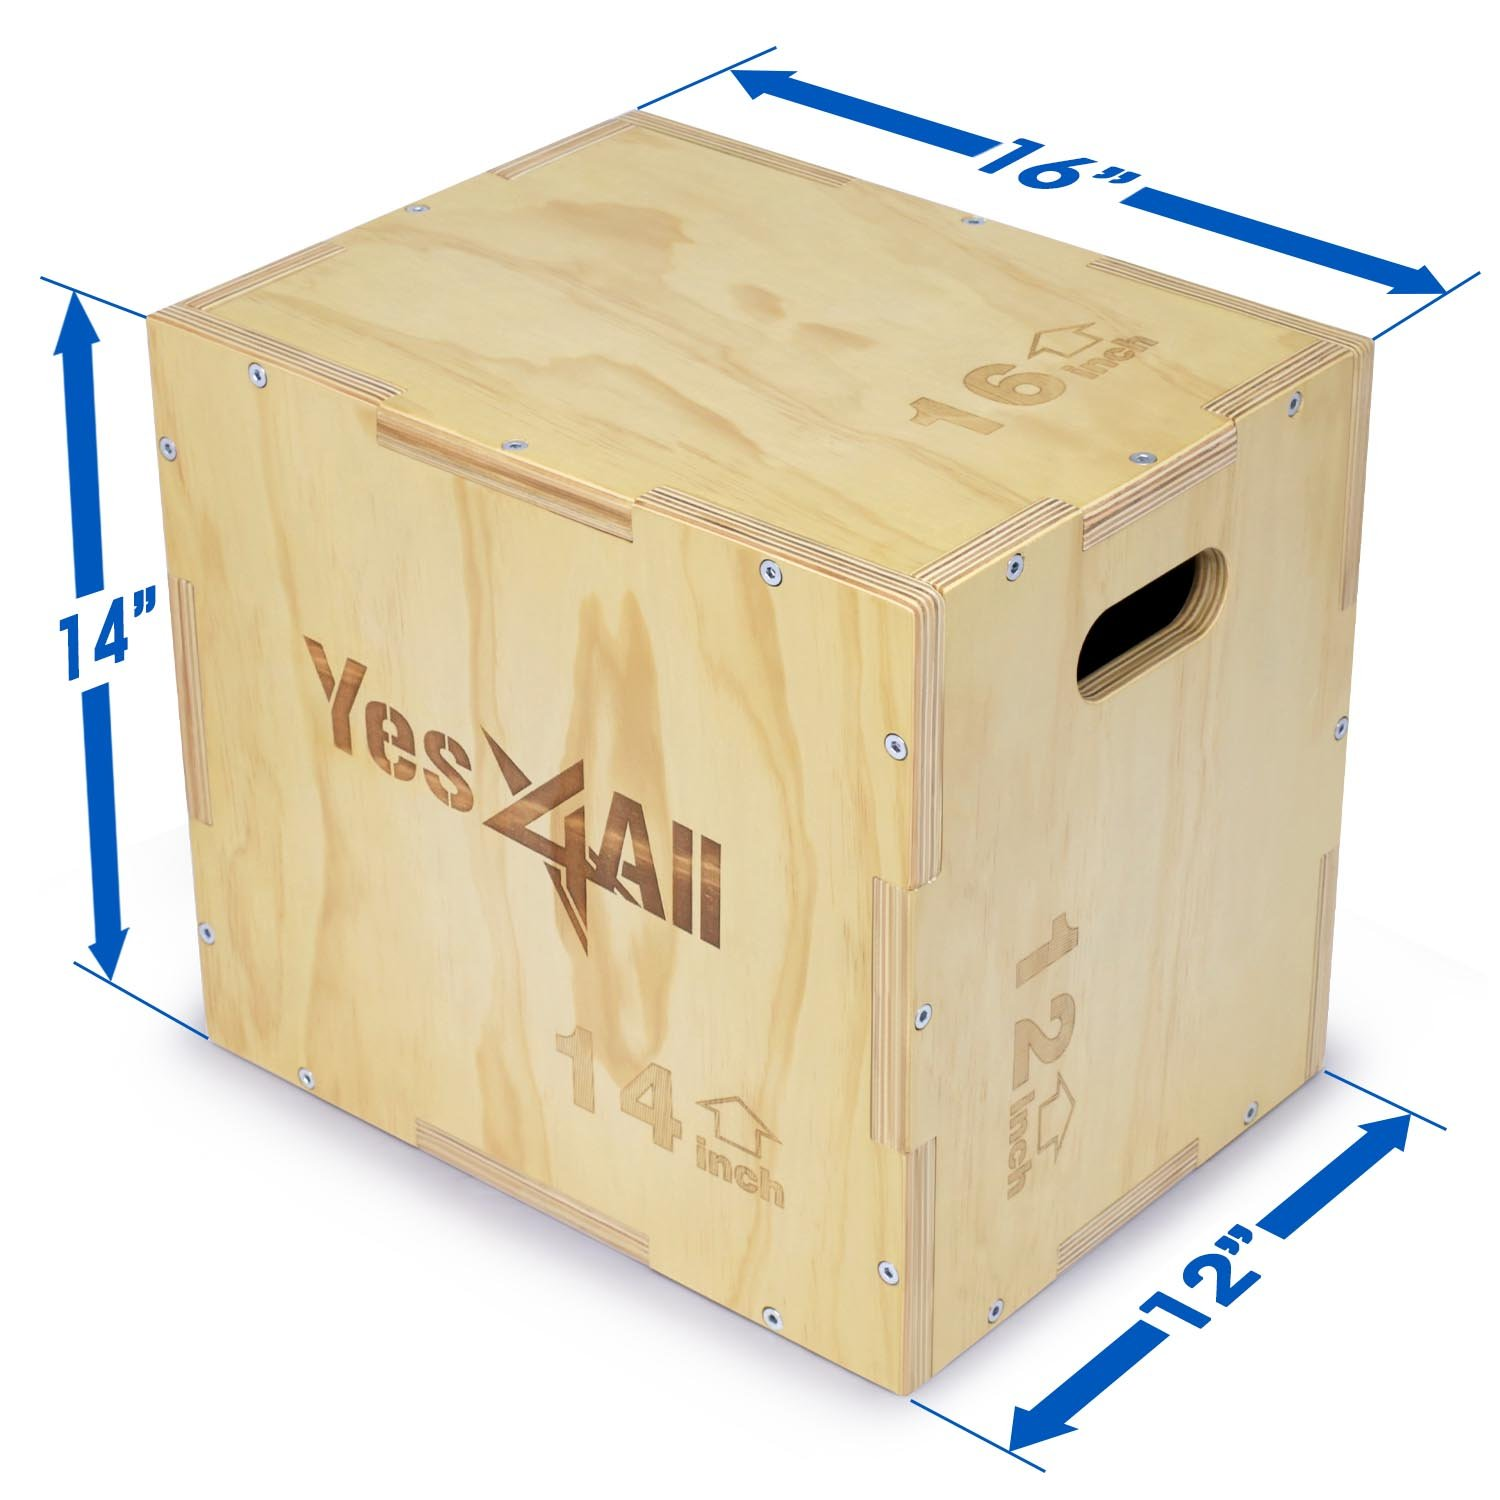 a4582a27543 Amazon.com   Yes4All Wood Plyo Box Wooden Plyo Box for Exercise ...